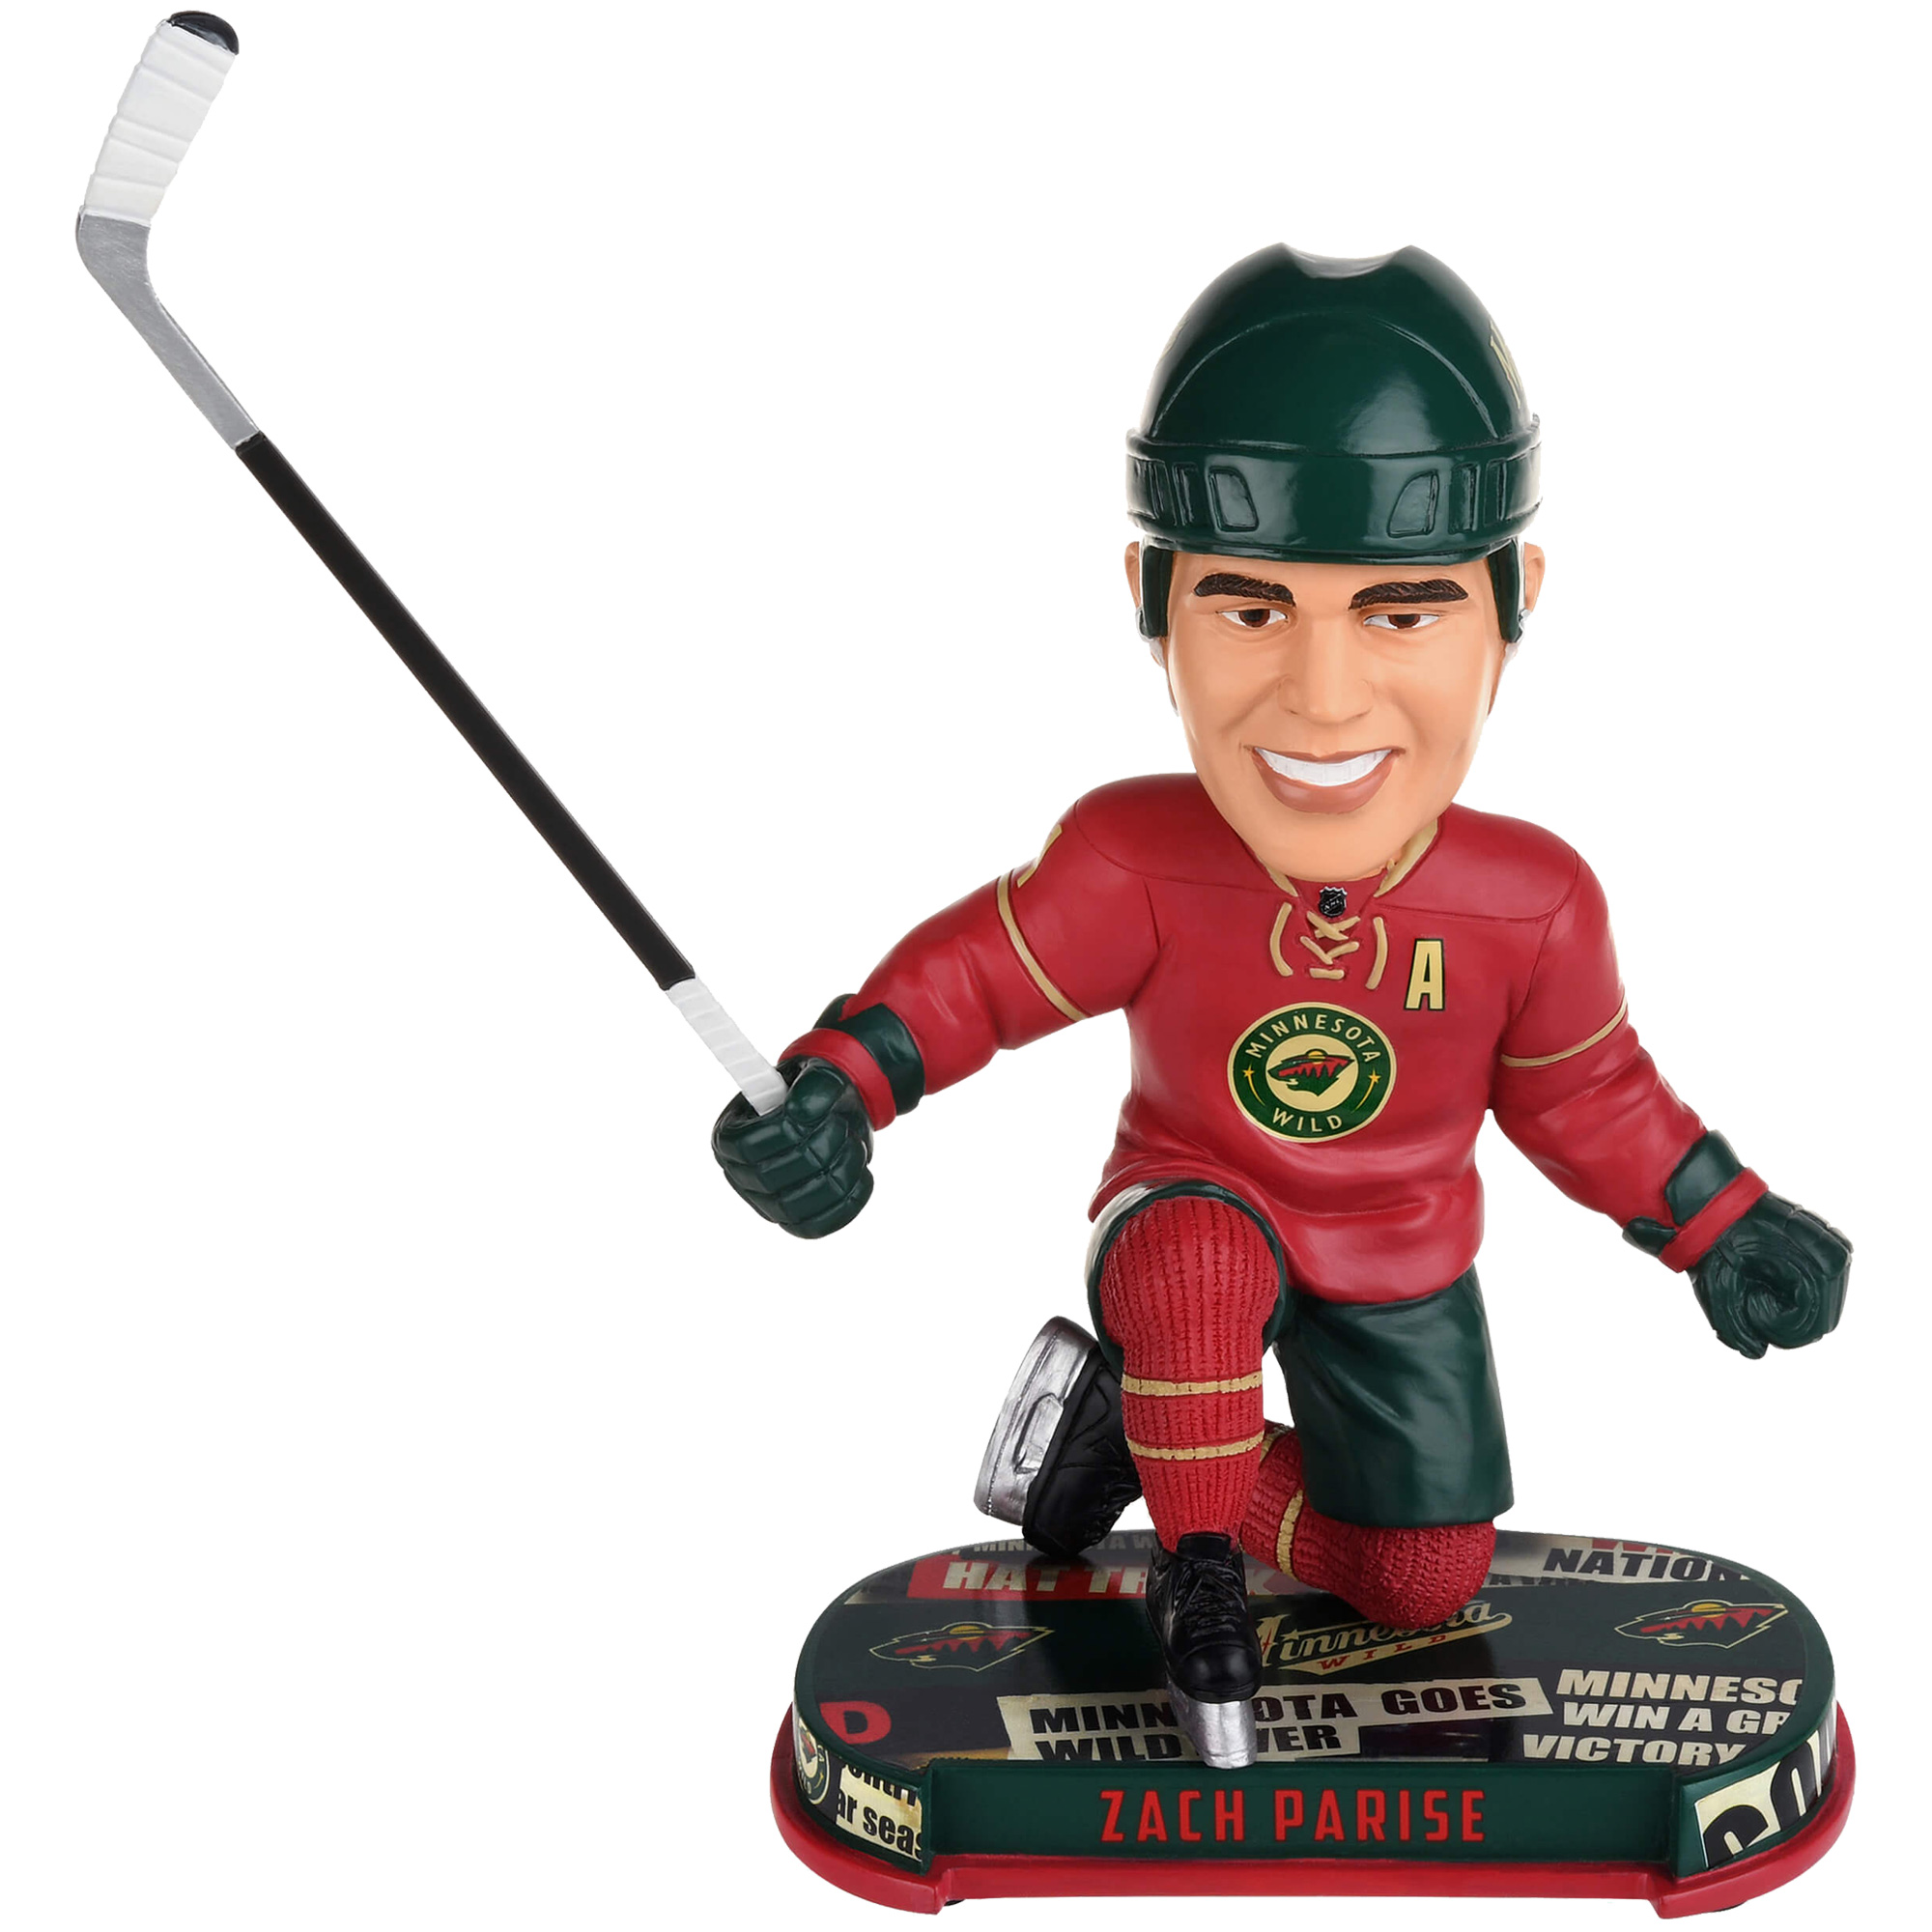 Zach Parise Minnesota Wild 2017 Headline Player Bobblehead - No Size